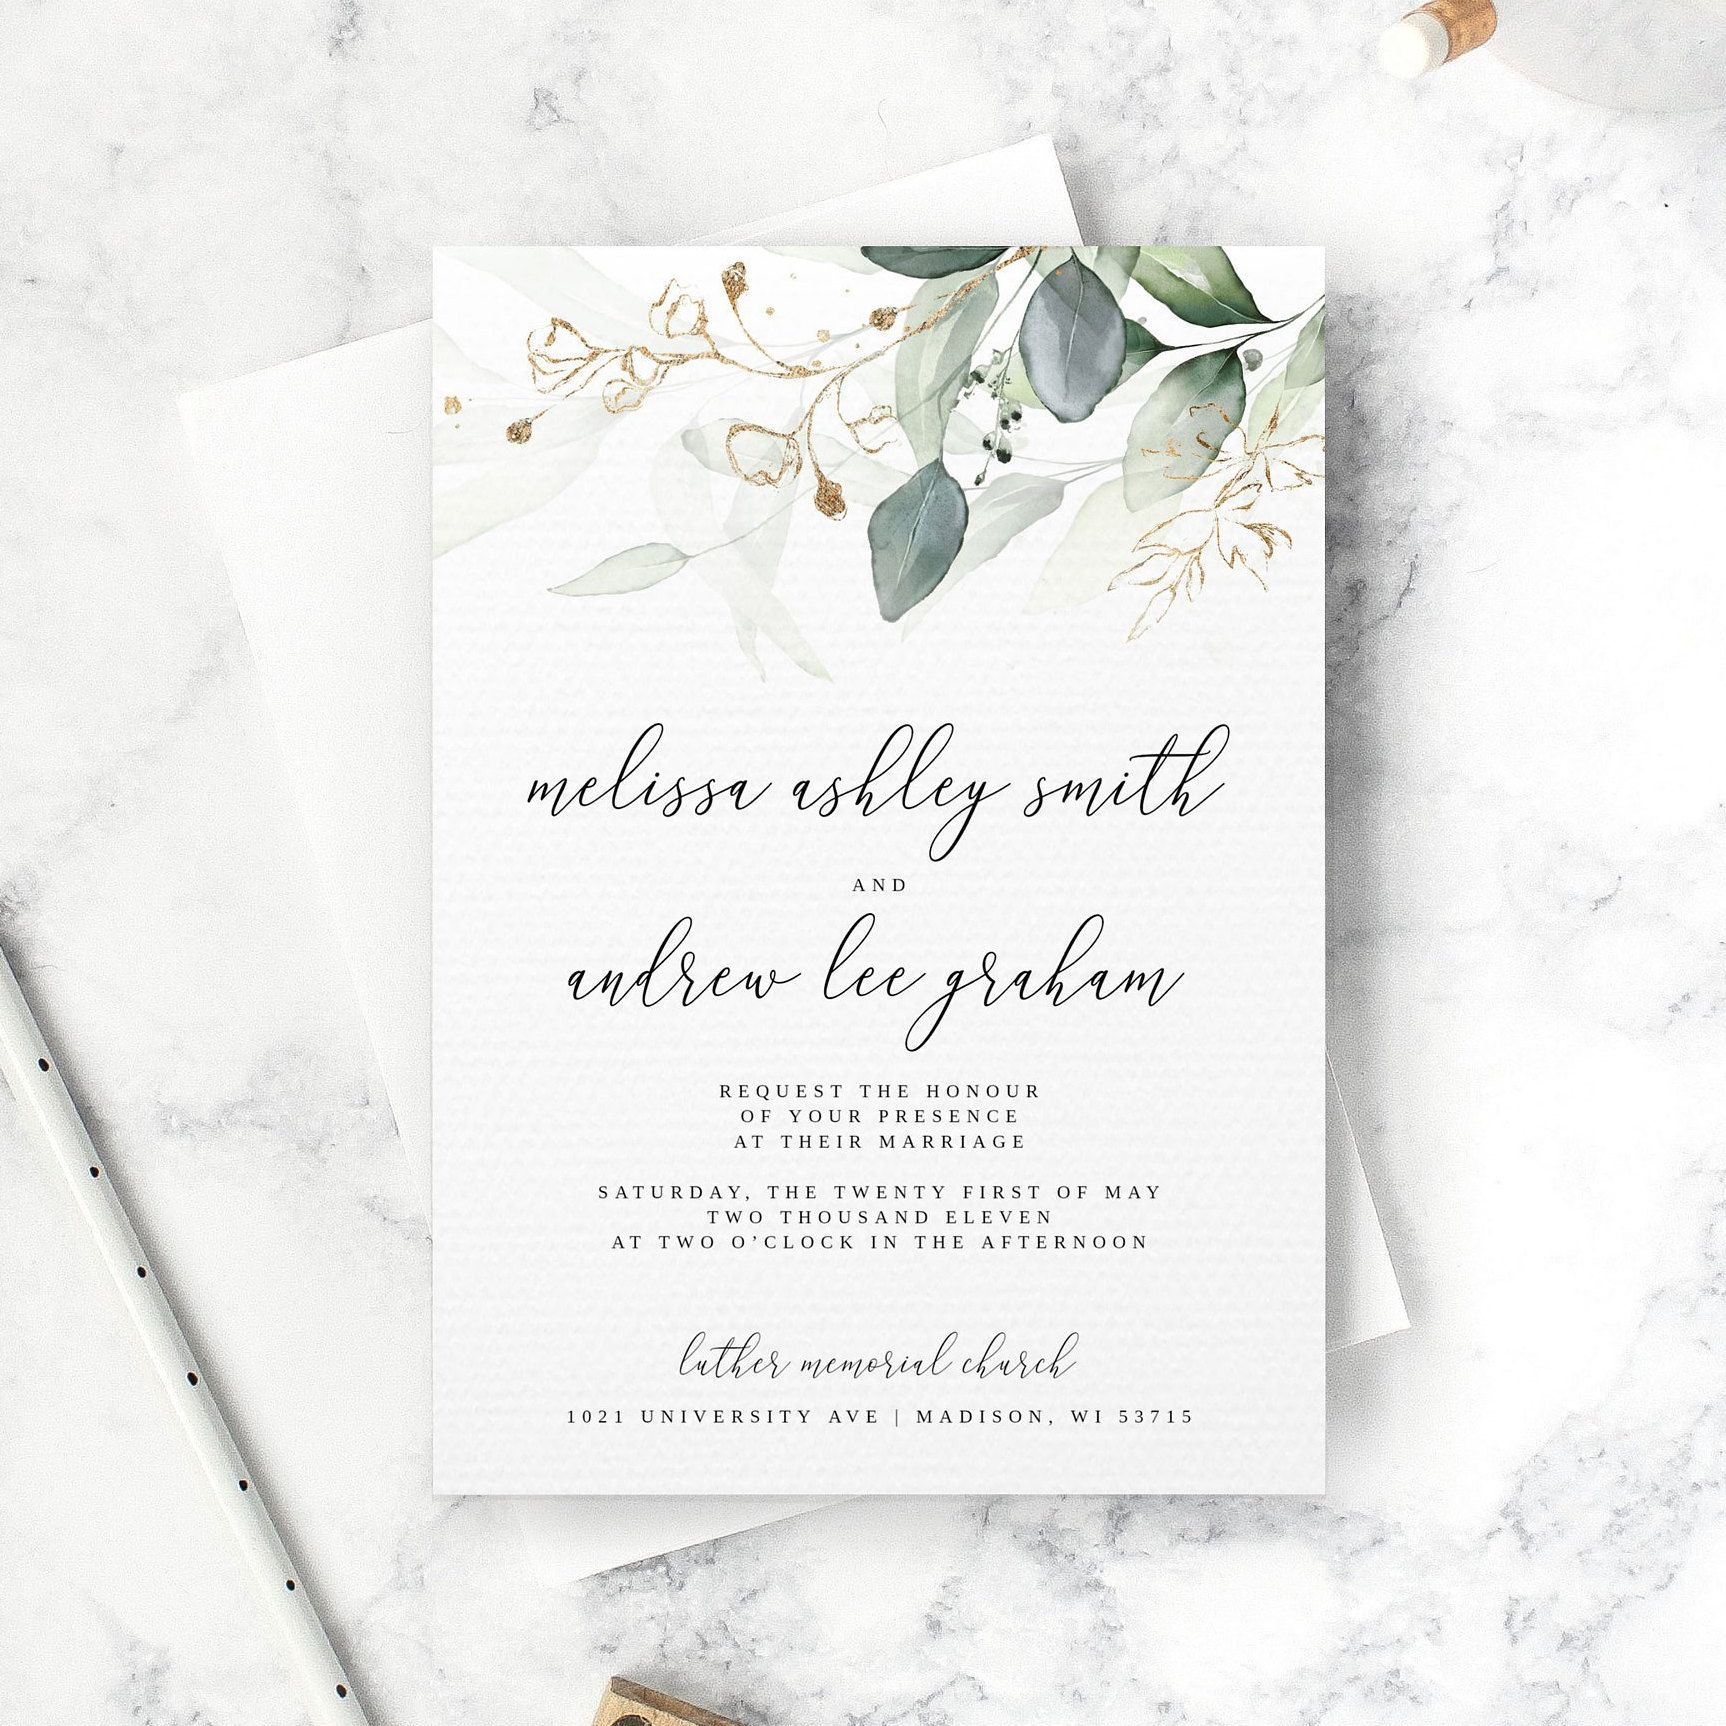 Eucalyptus Wedding Invitation Set Template Invitation Only Etsy Wedding Invitation Templates Eucalyptus Wedding Invitation Wedding Invitations Leaves